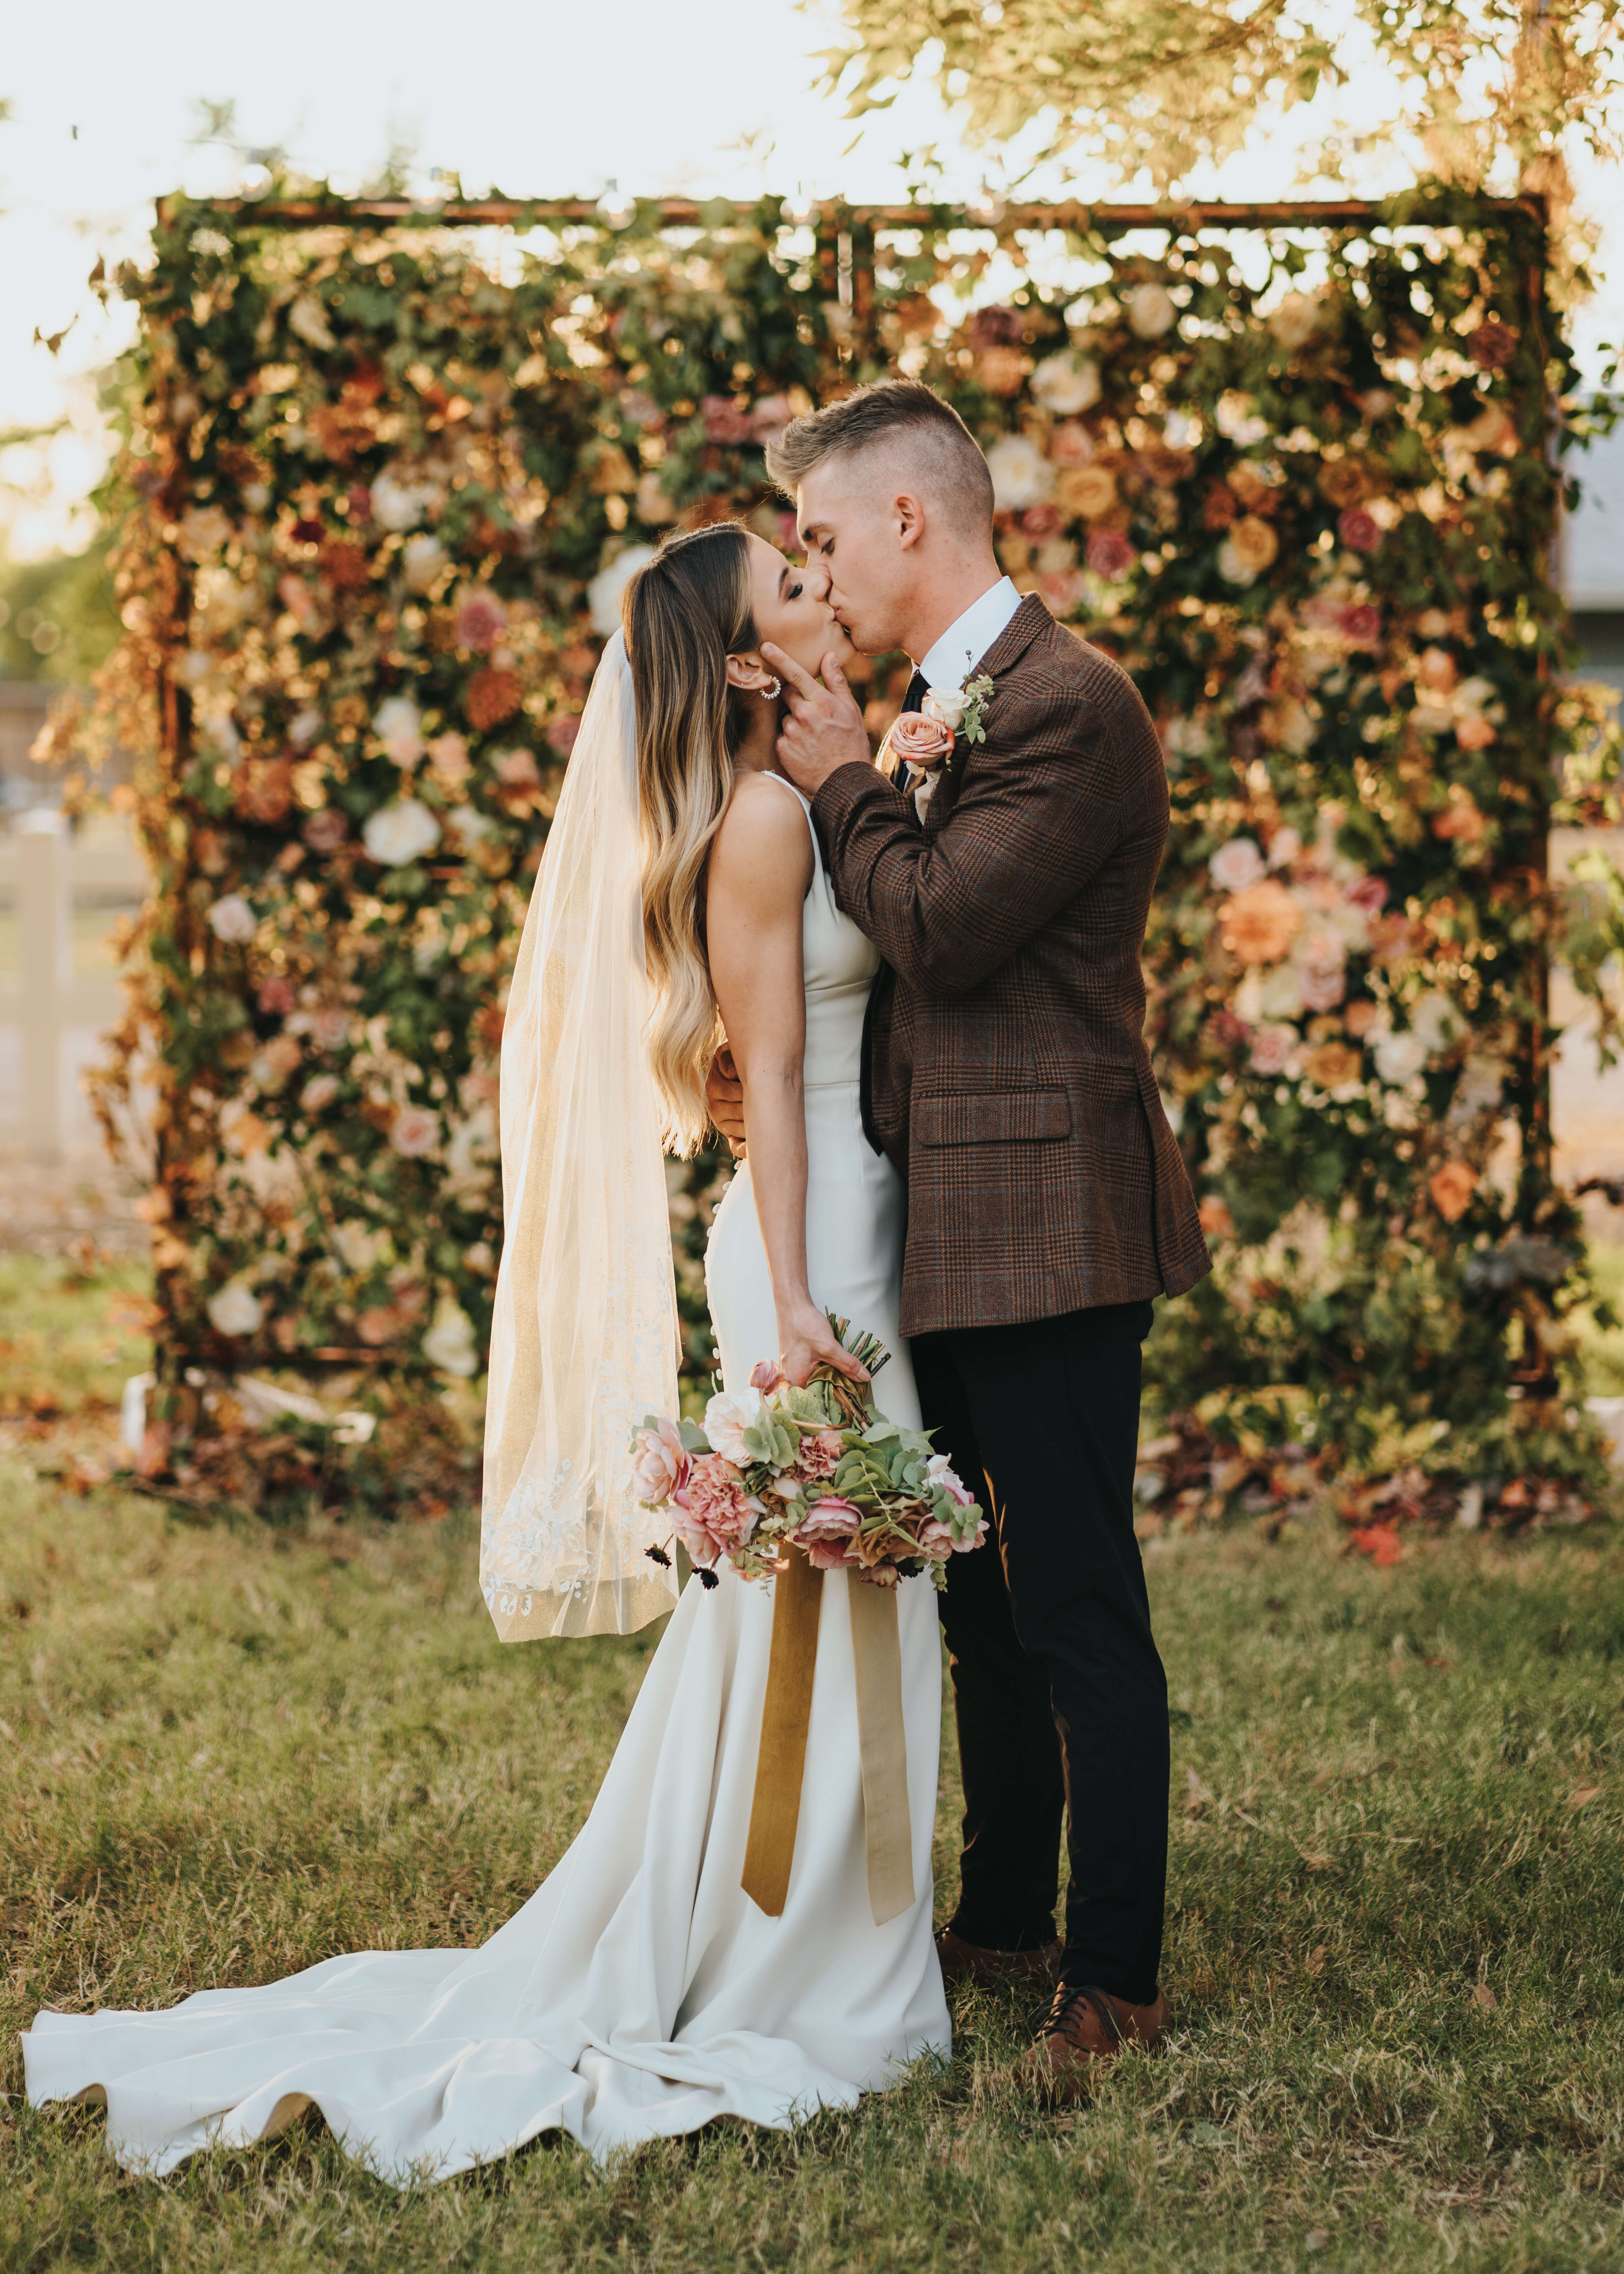 kissing picture of bride in groom on wedding day by floral wall